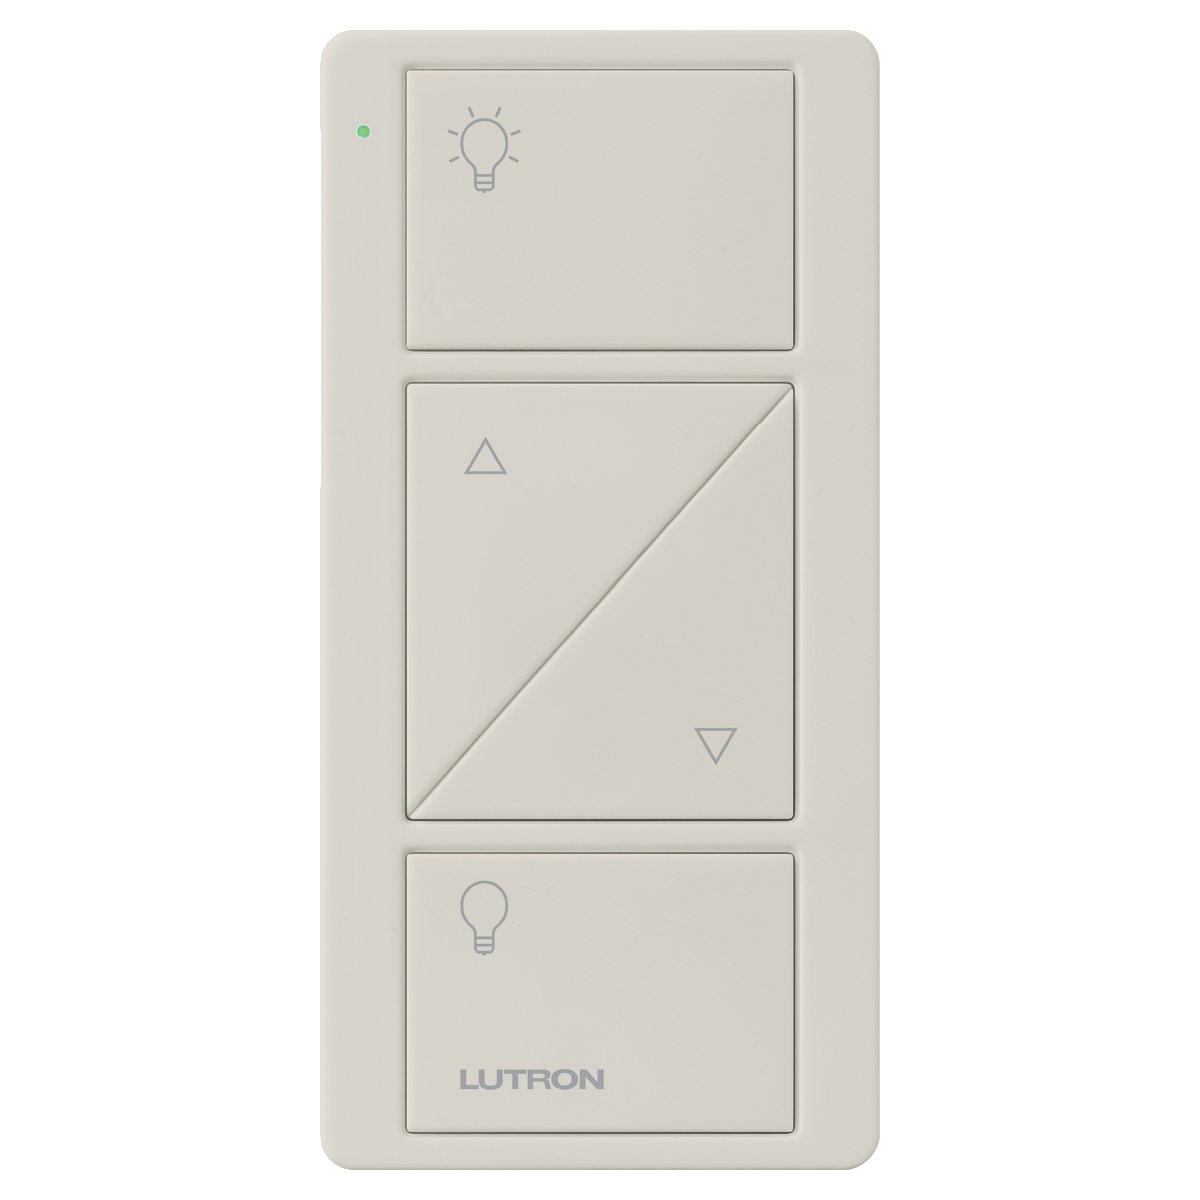 Lutron 2-Button with Rise/Lower Pico Remote for Caseta Wireless Smart Lighting Dimmer Switch, PJ2-2BRL-GIV-L01, Ivory - - Amazon.com